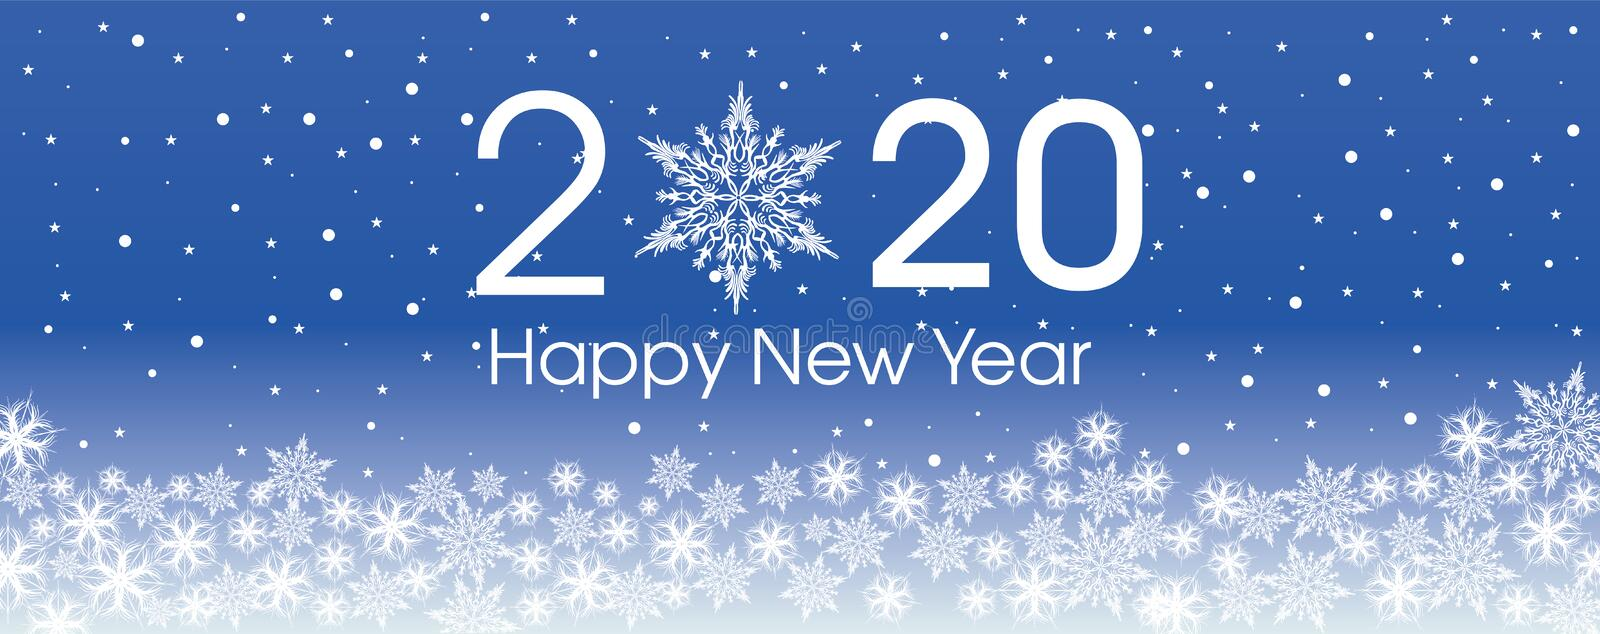 2020 Happy New Year card template. Design patern snowflakes royalty free stock photos